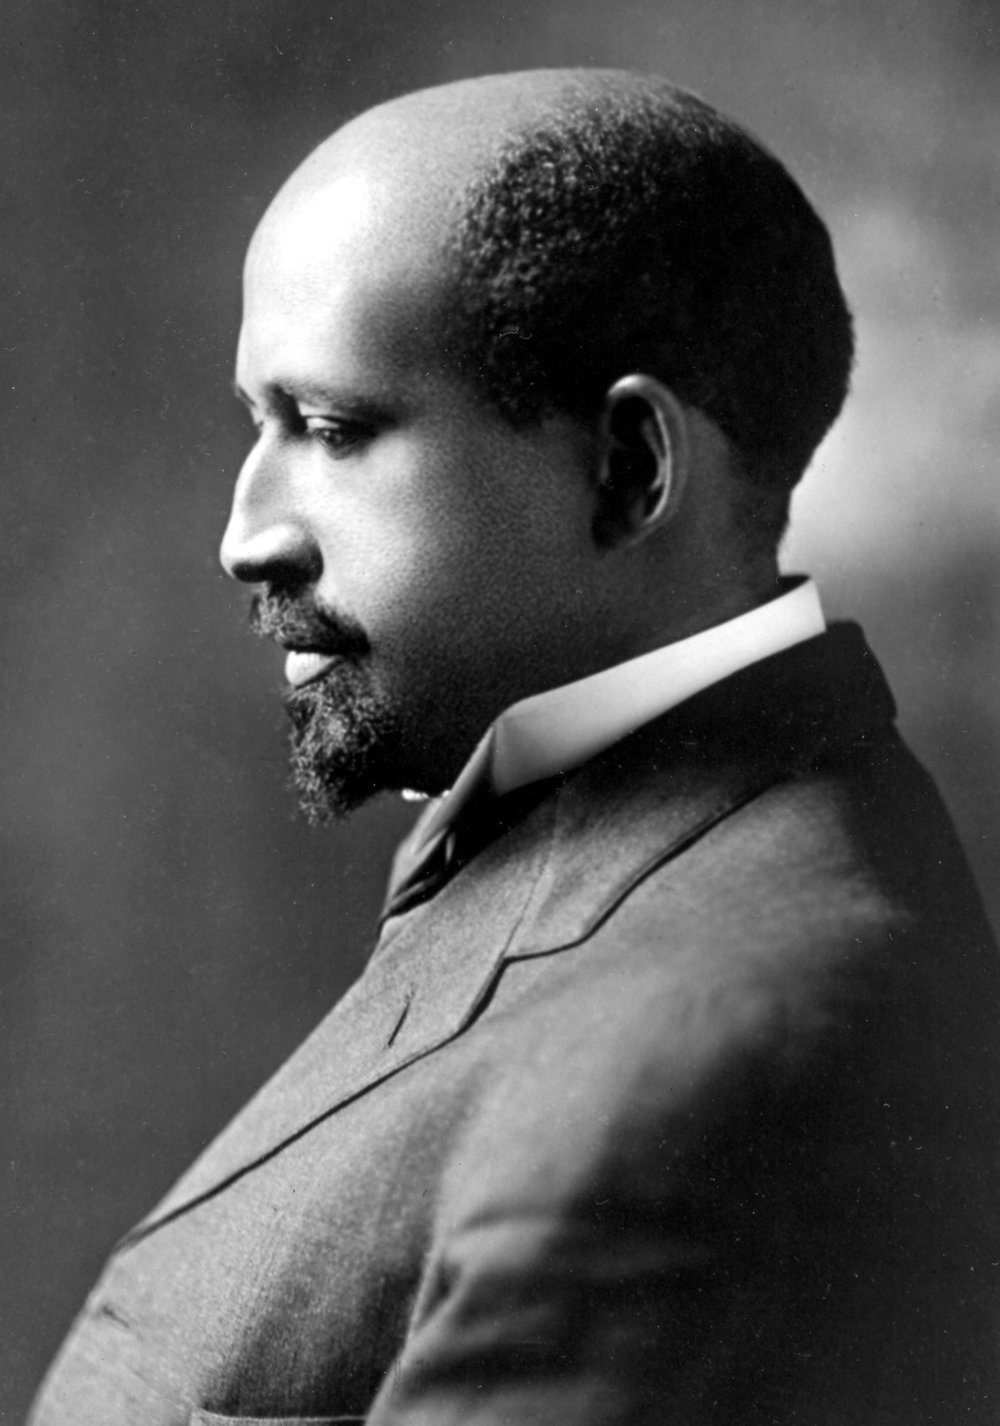 motto_web_dubois_original2.jpg